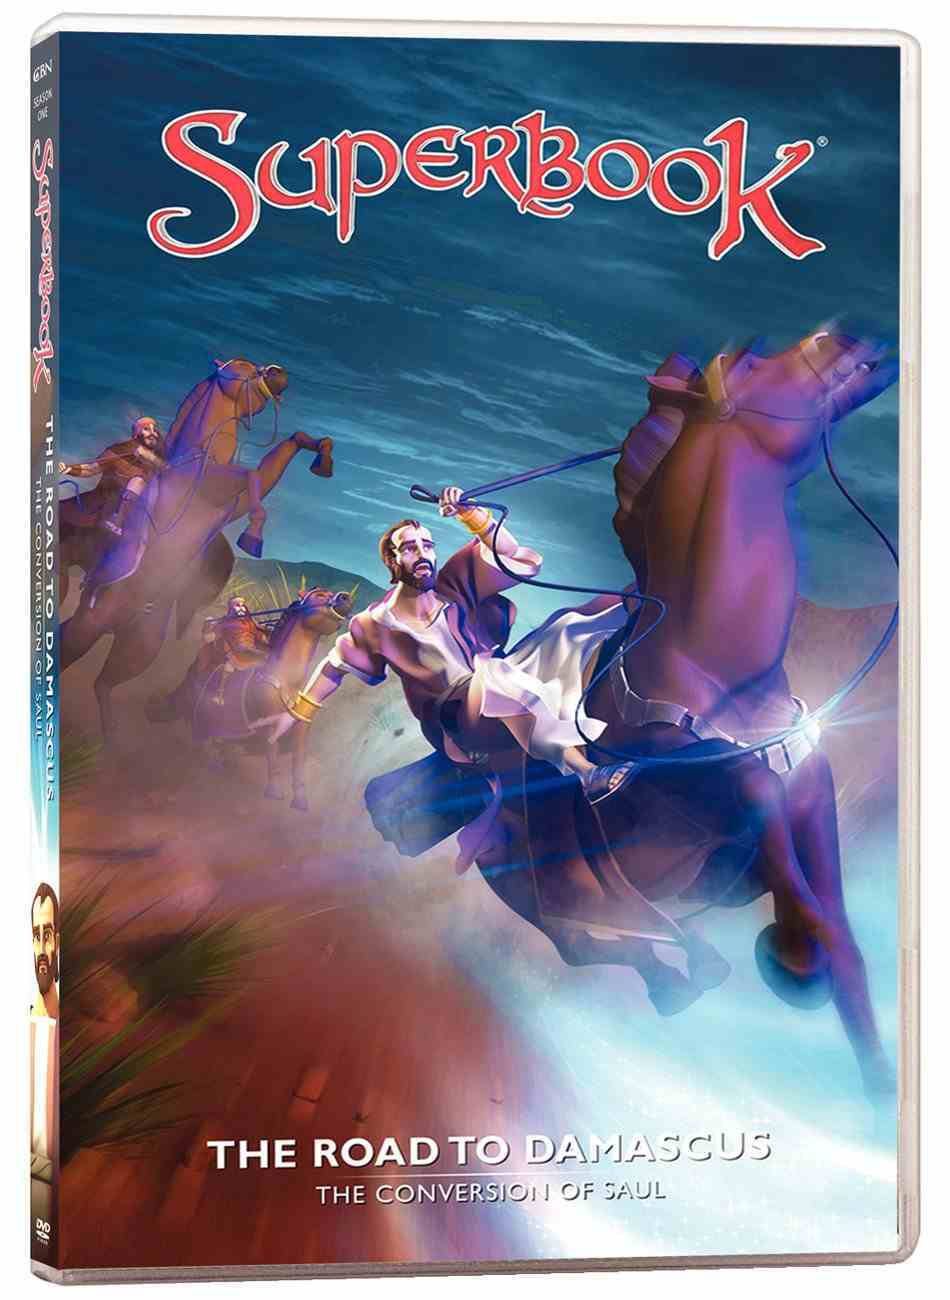 Road to Damascus, the - the Conversion of Paul (#12 in Superbook Dvd Series Season 01) DVD